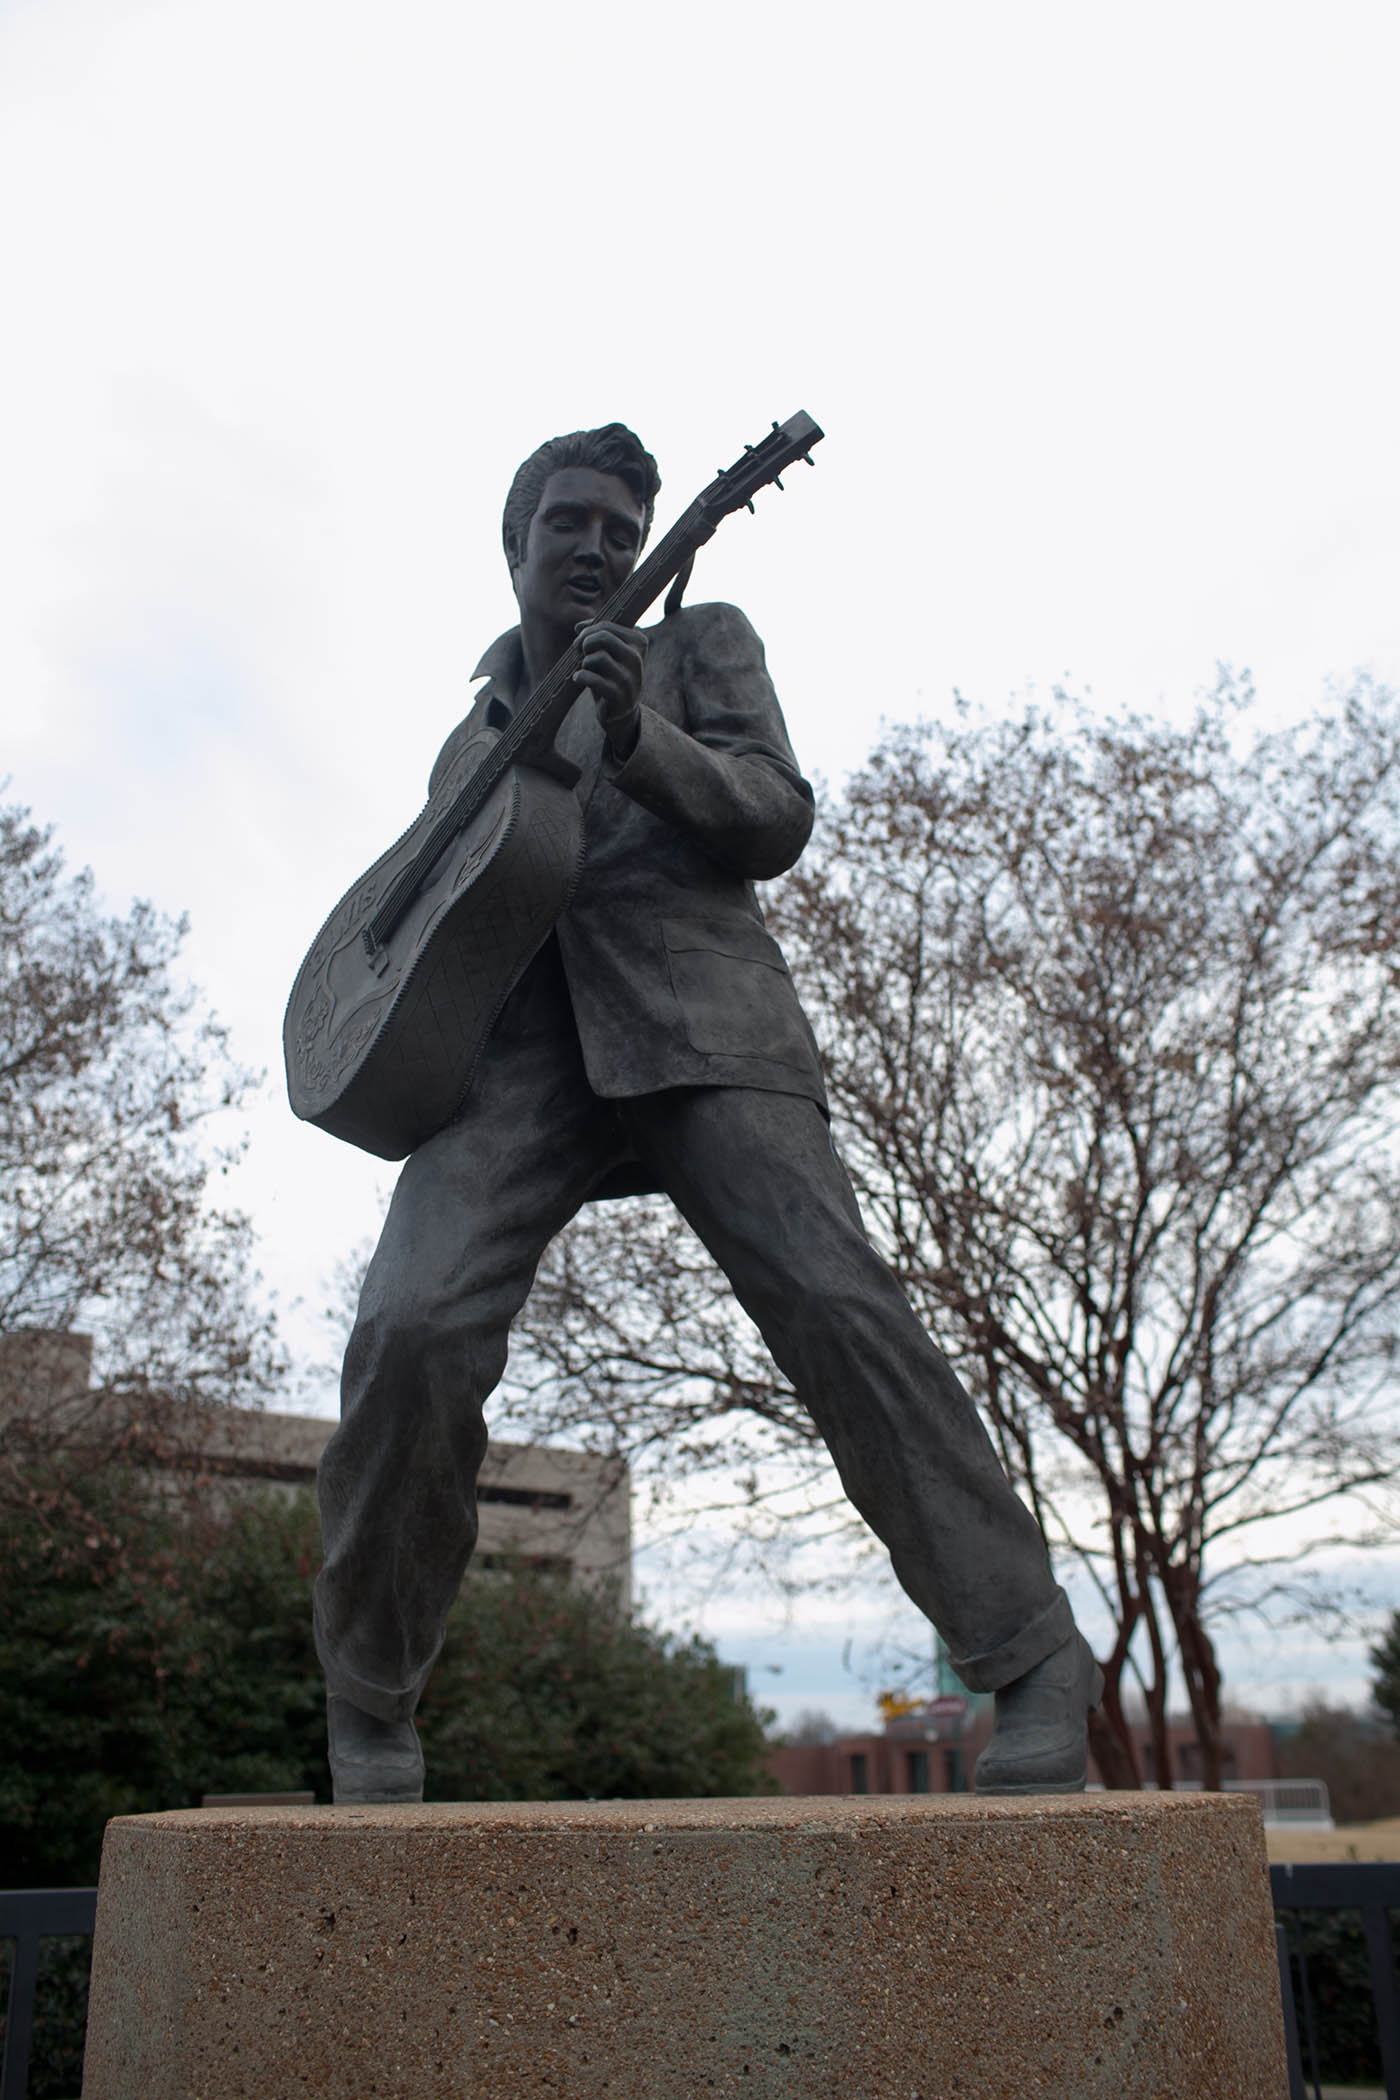 Elvis statue in Memphis, Tennessee on Beale Street - Roadside attraction in Tennessee